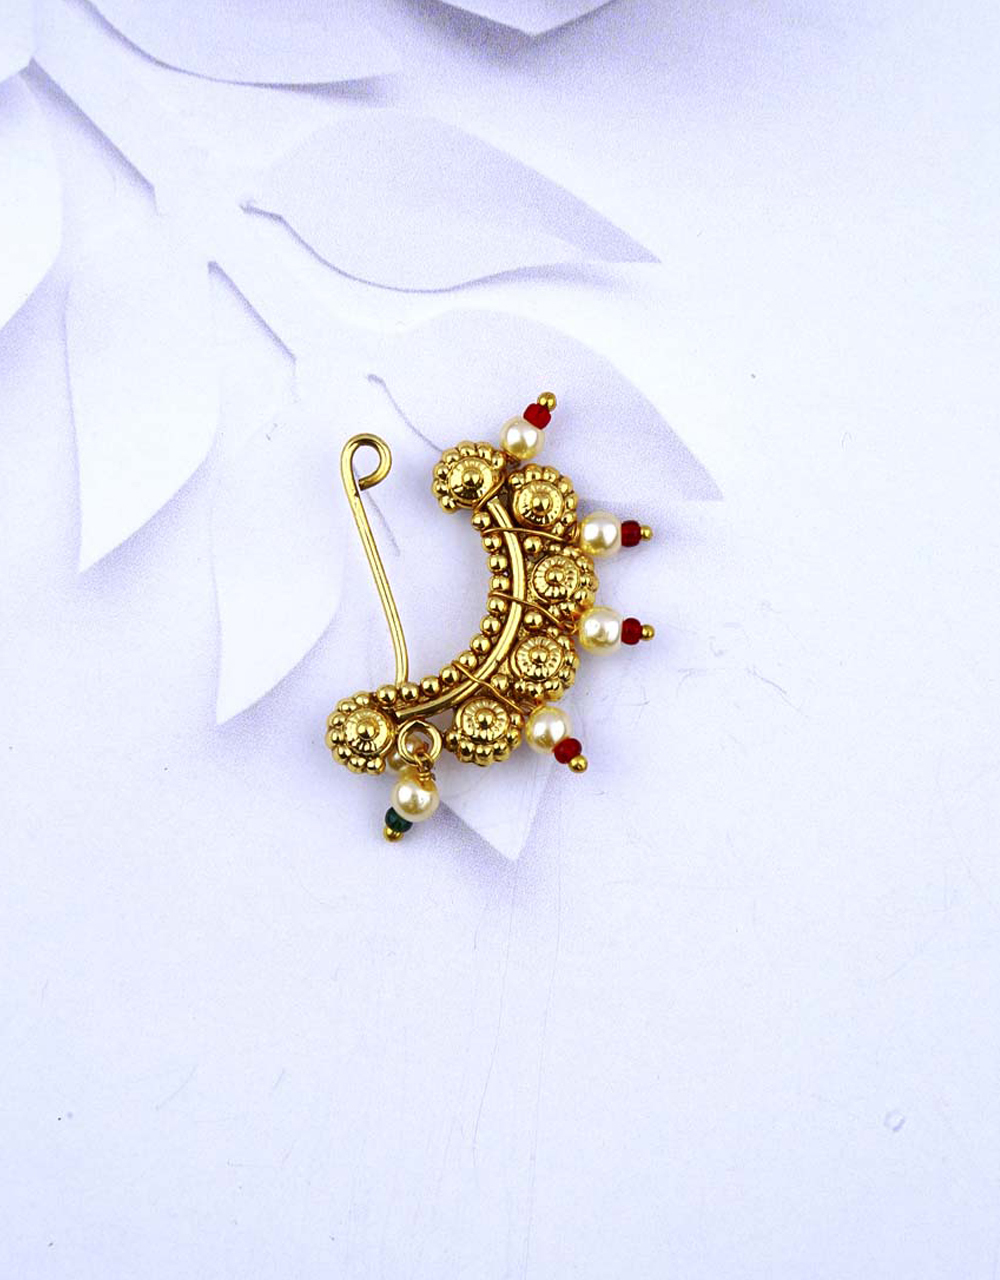 Simple and Sober Golden Finish Encrusted with Moti Maharashtrian Clip on Nath